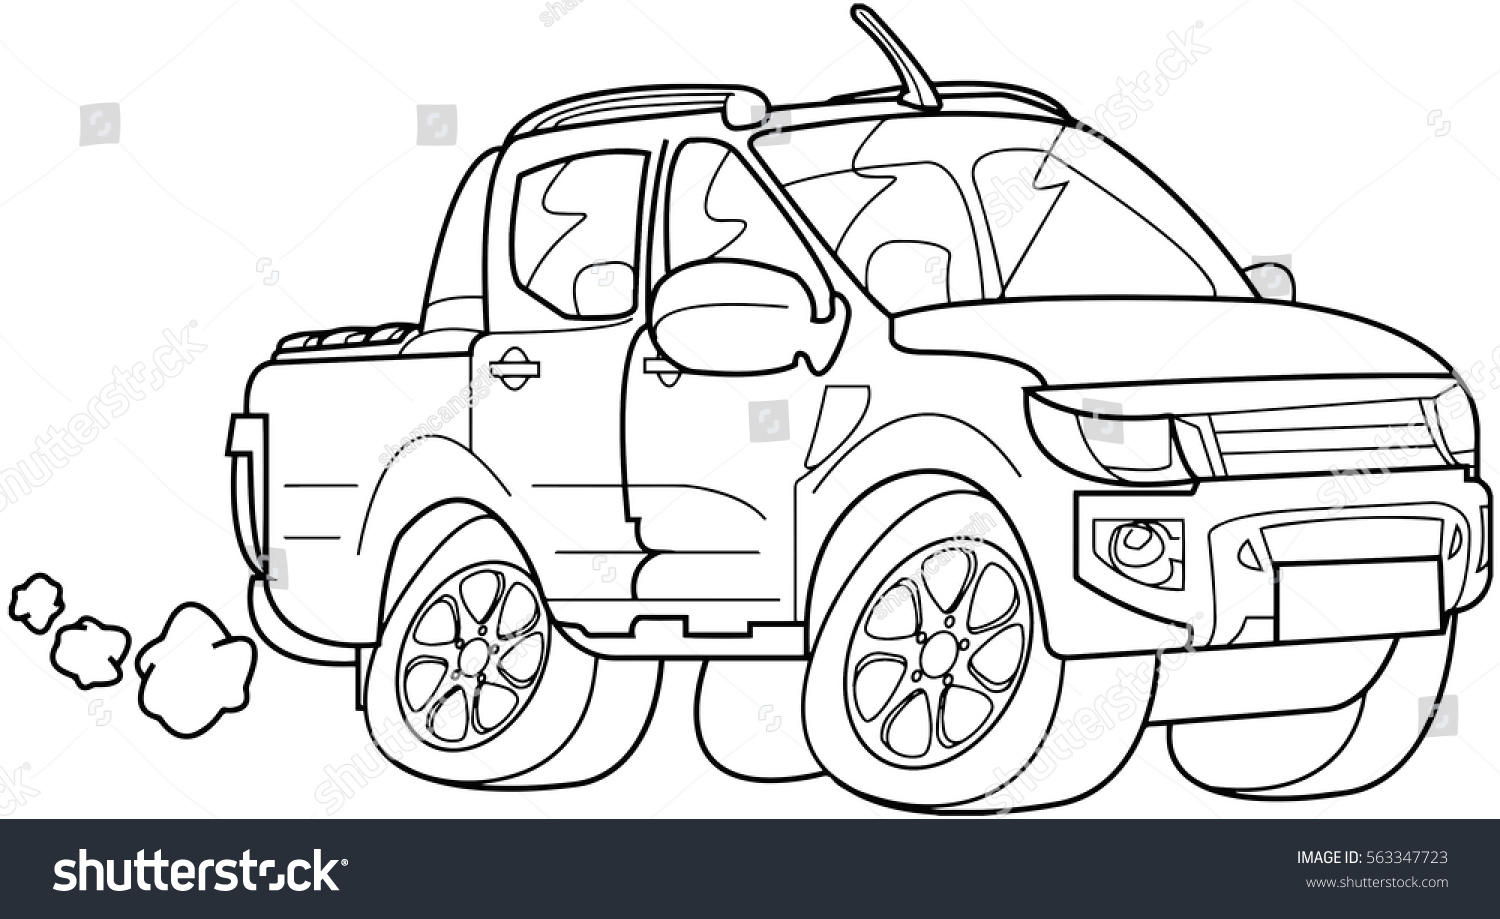 Childrens educational coloring activity book - Car Outline Vector Suitable For Kids Activity Such As Coloring Book Arts Class Education